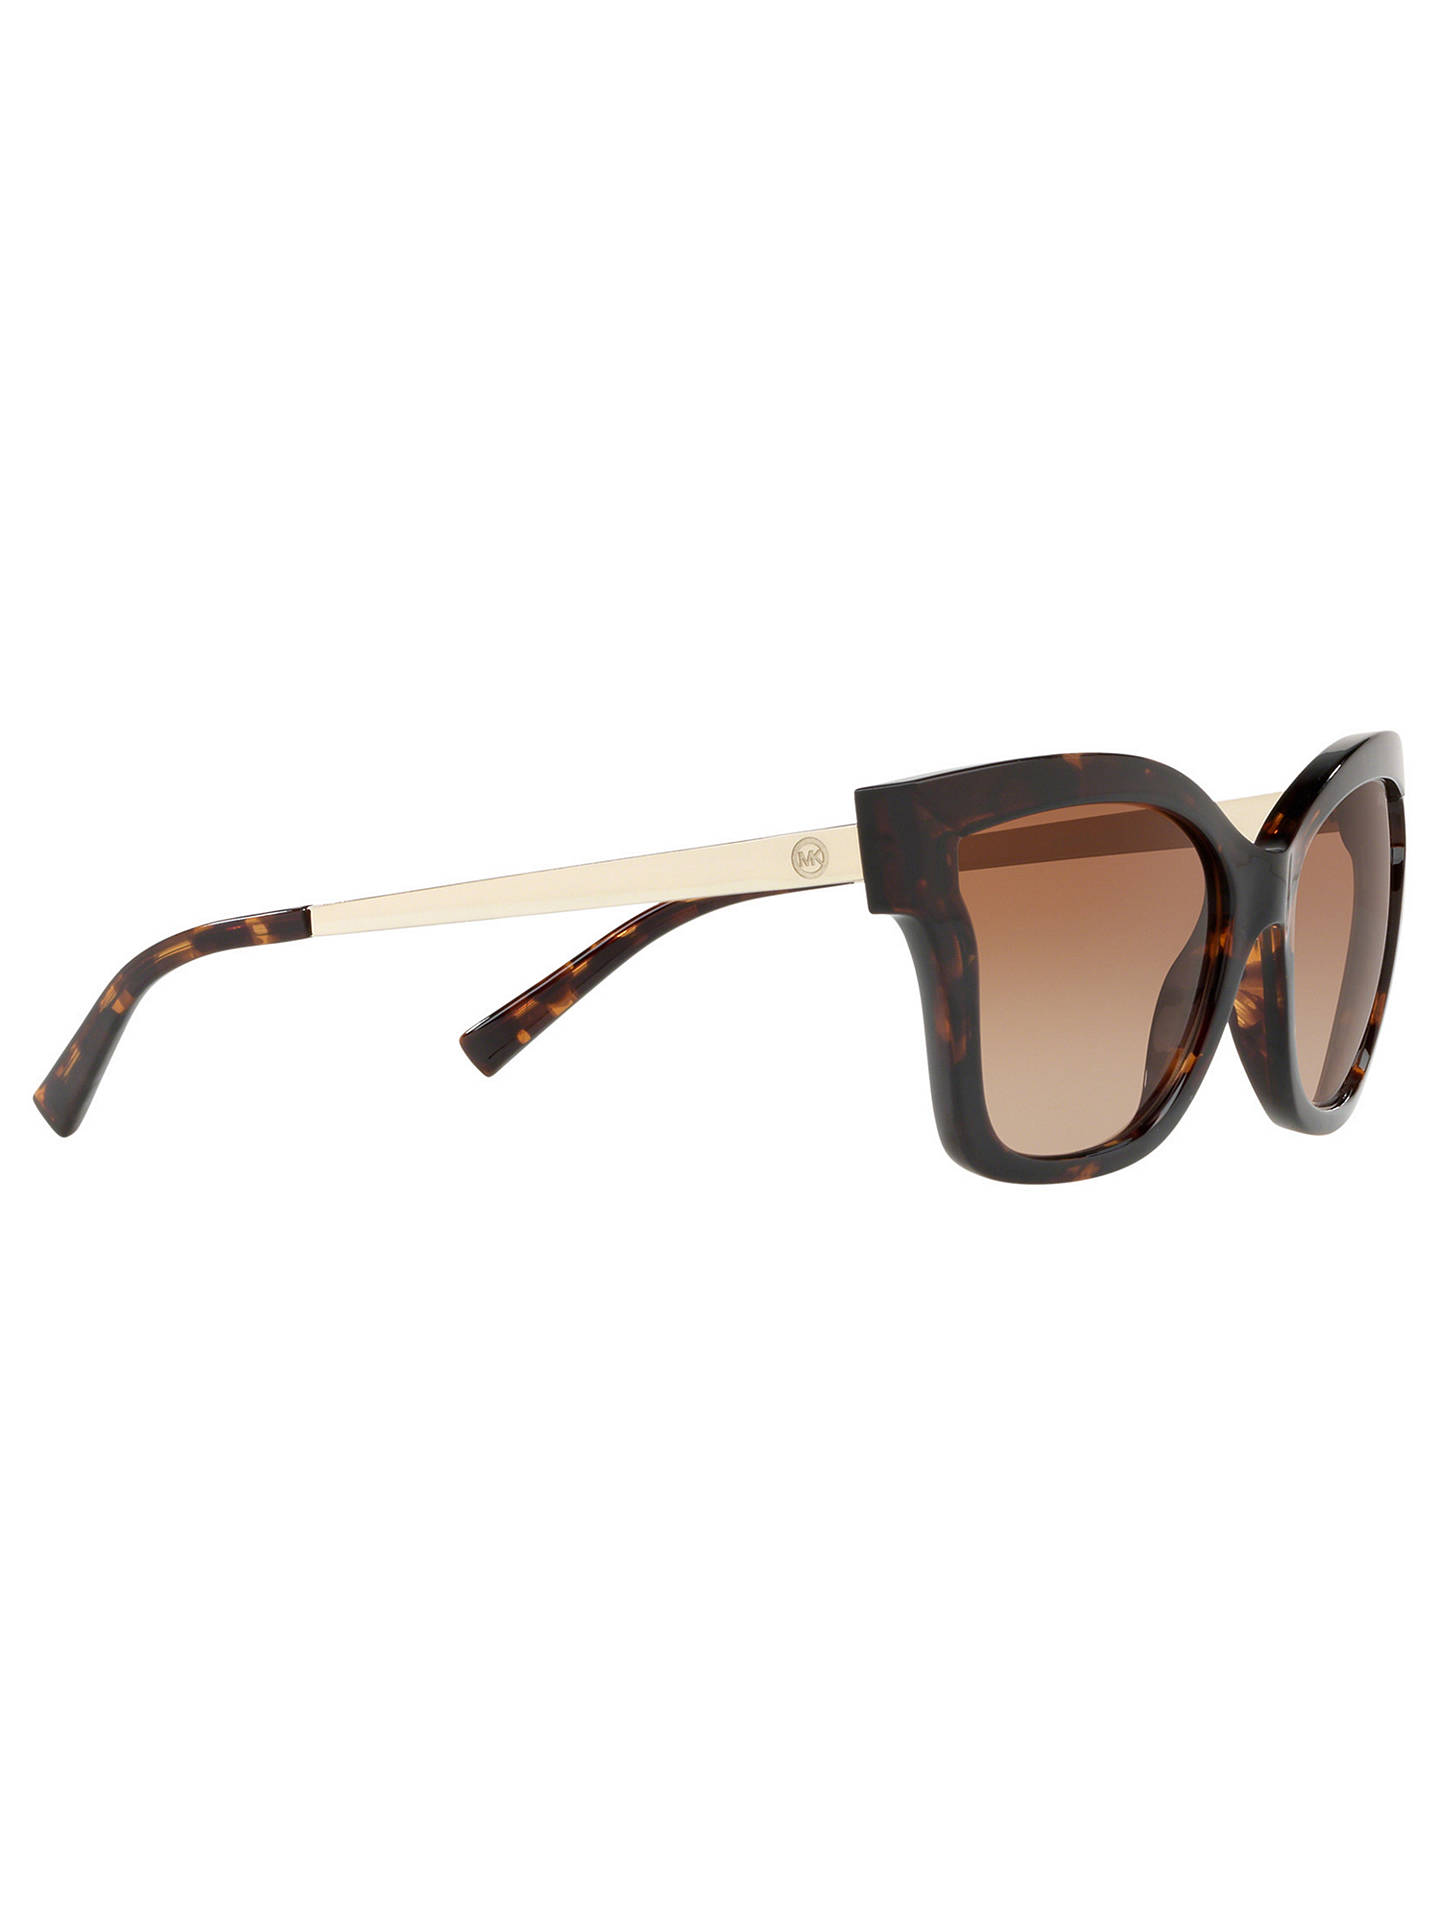 328a2cf827 Michael Kors MK2072 Women s Barbados Square Sunglasses at John Lewis ...